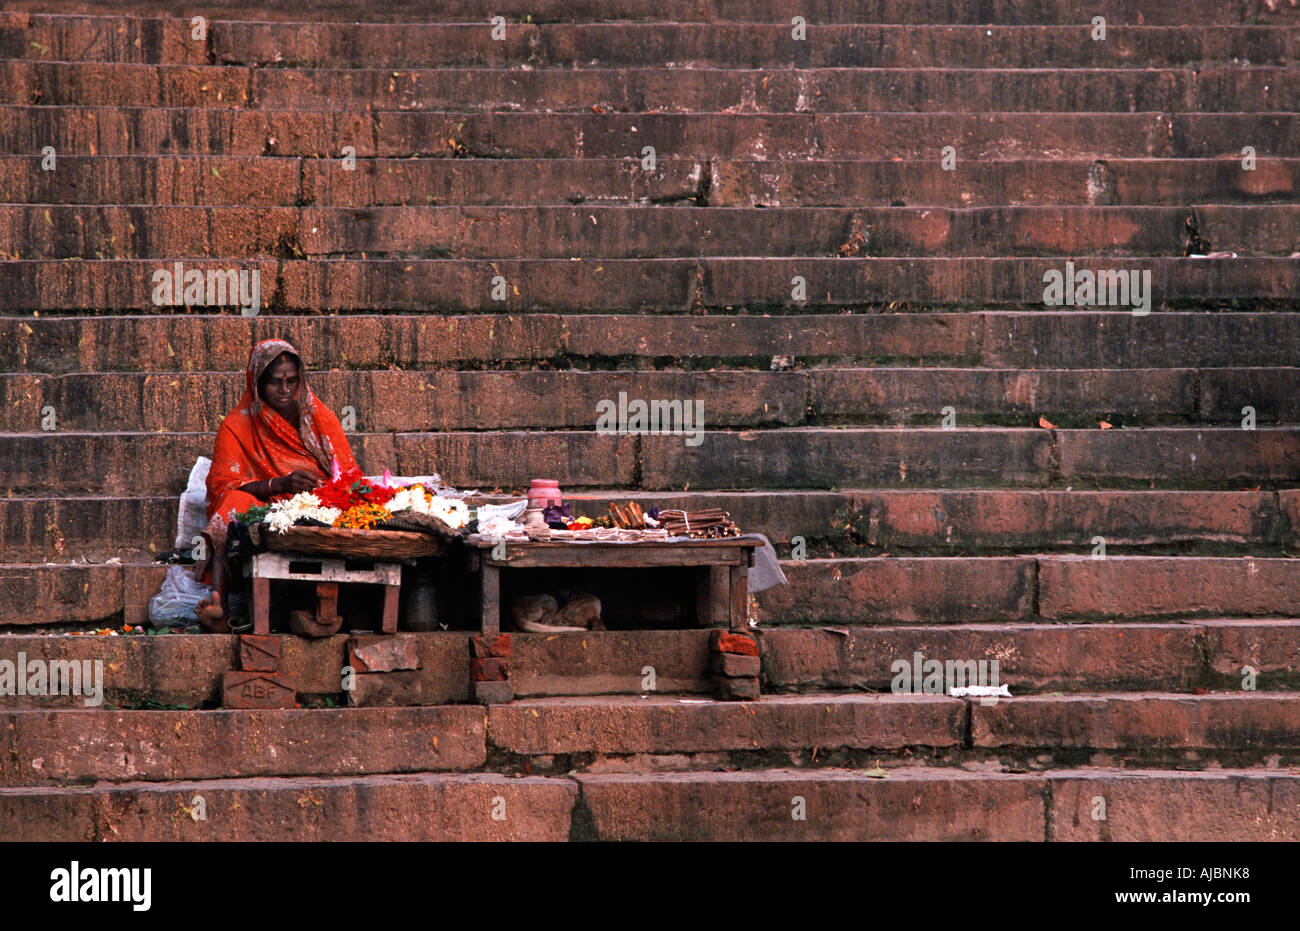 Indian woman vending ritual paraphernalia from a stall on a ghat beside the river Ganges Varanasi India - Stock Image